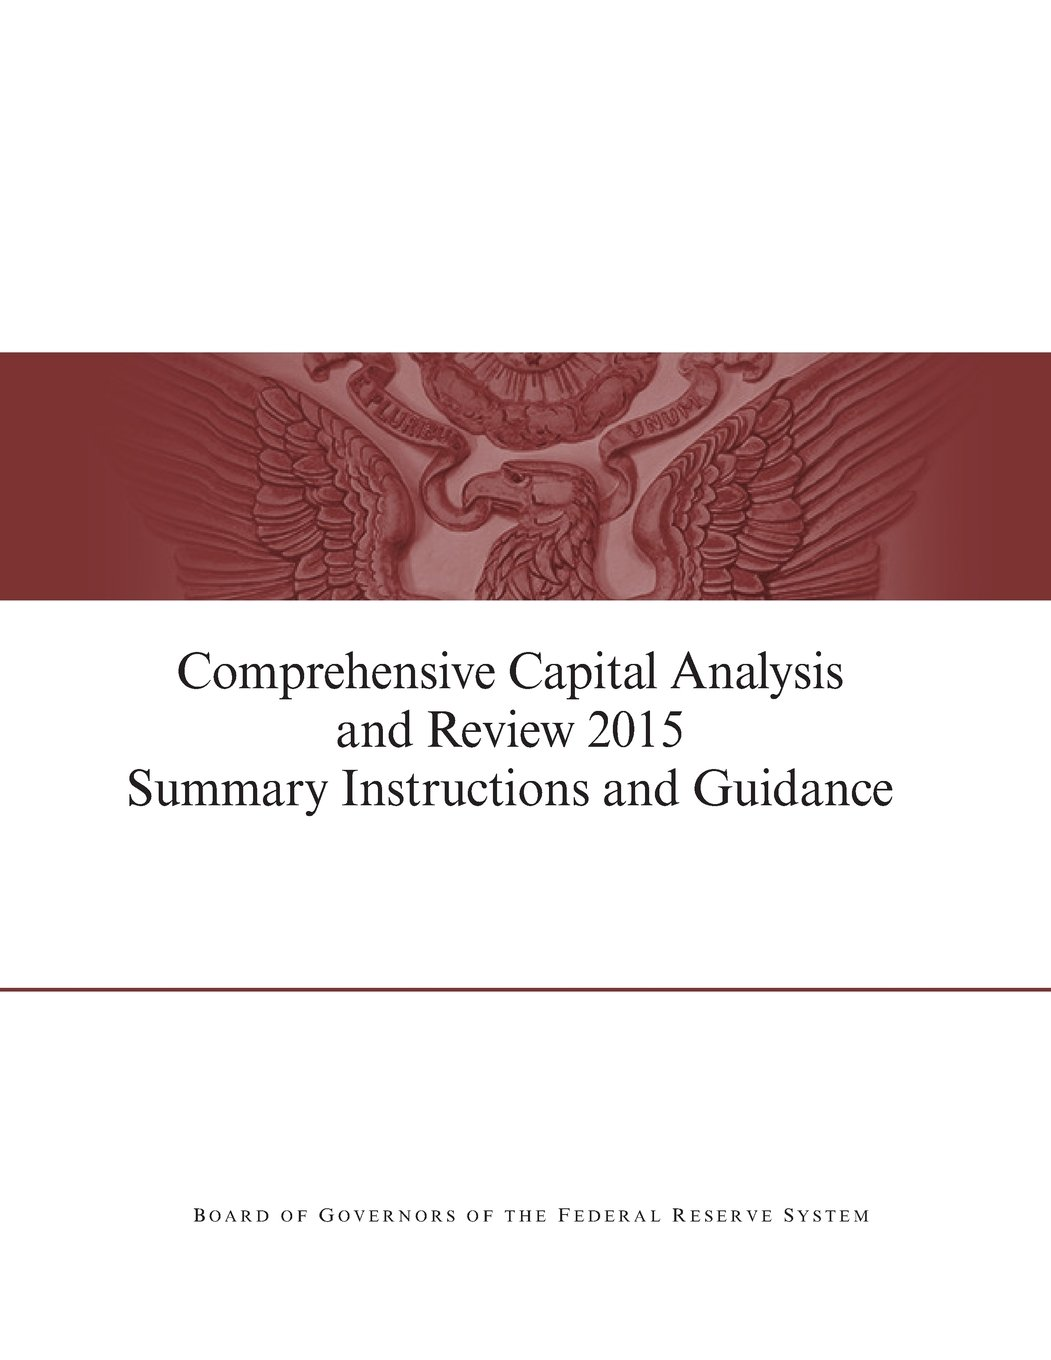 Comprehensive Capital Analysis and Review 2015 Summary Instruction and Guidance PDF ePub ebook